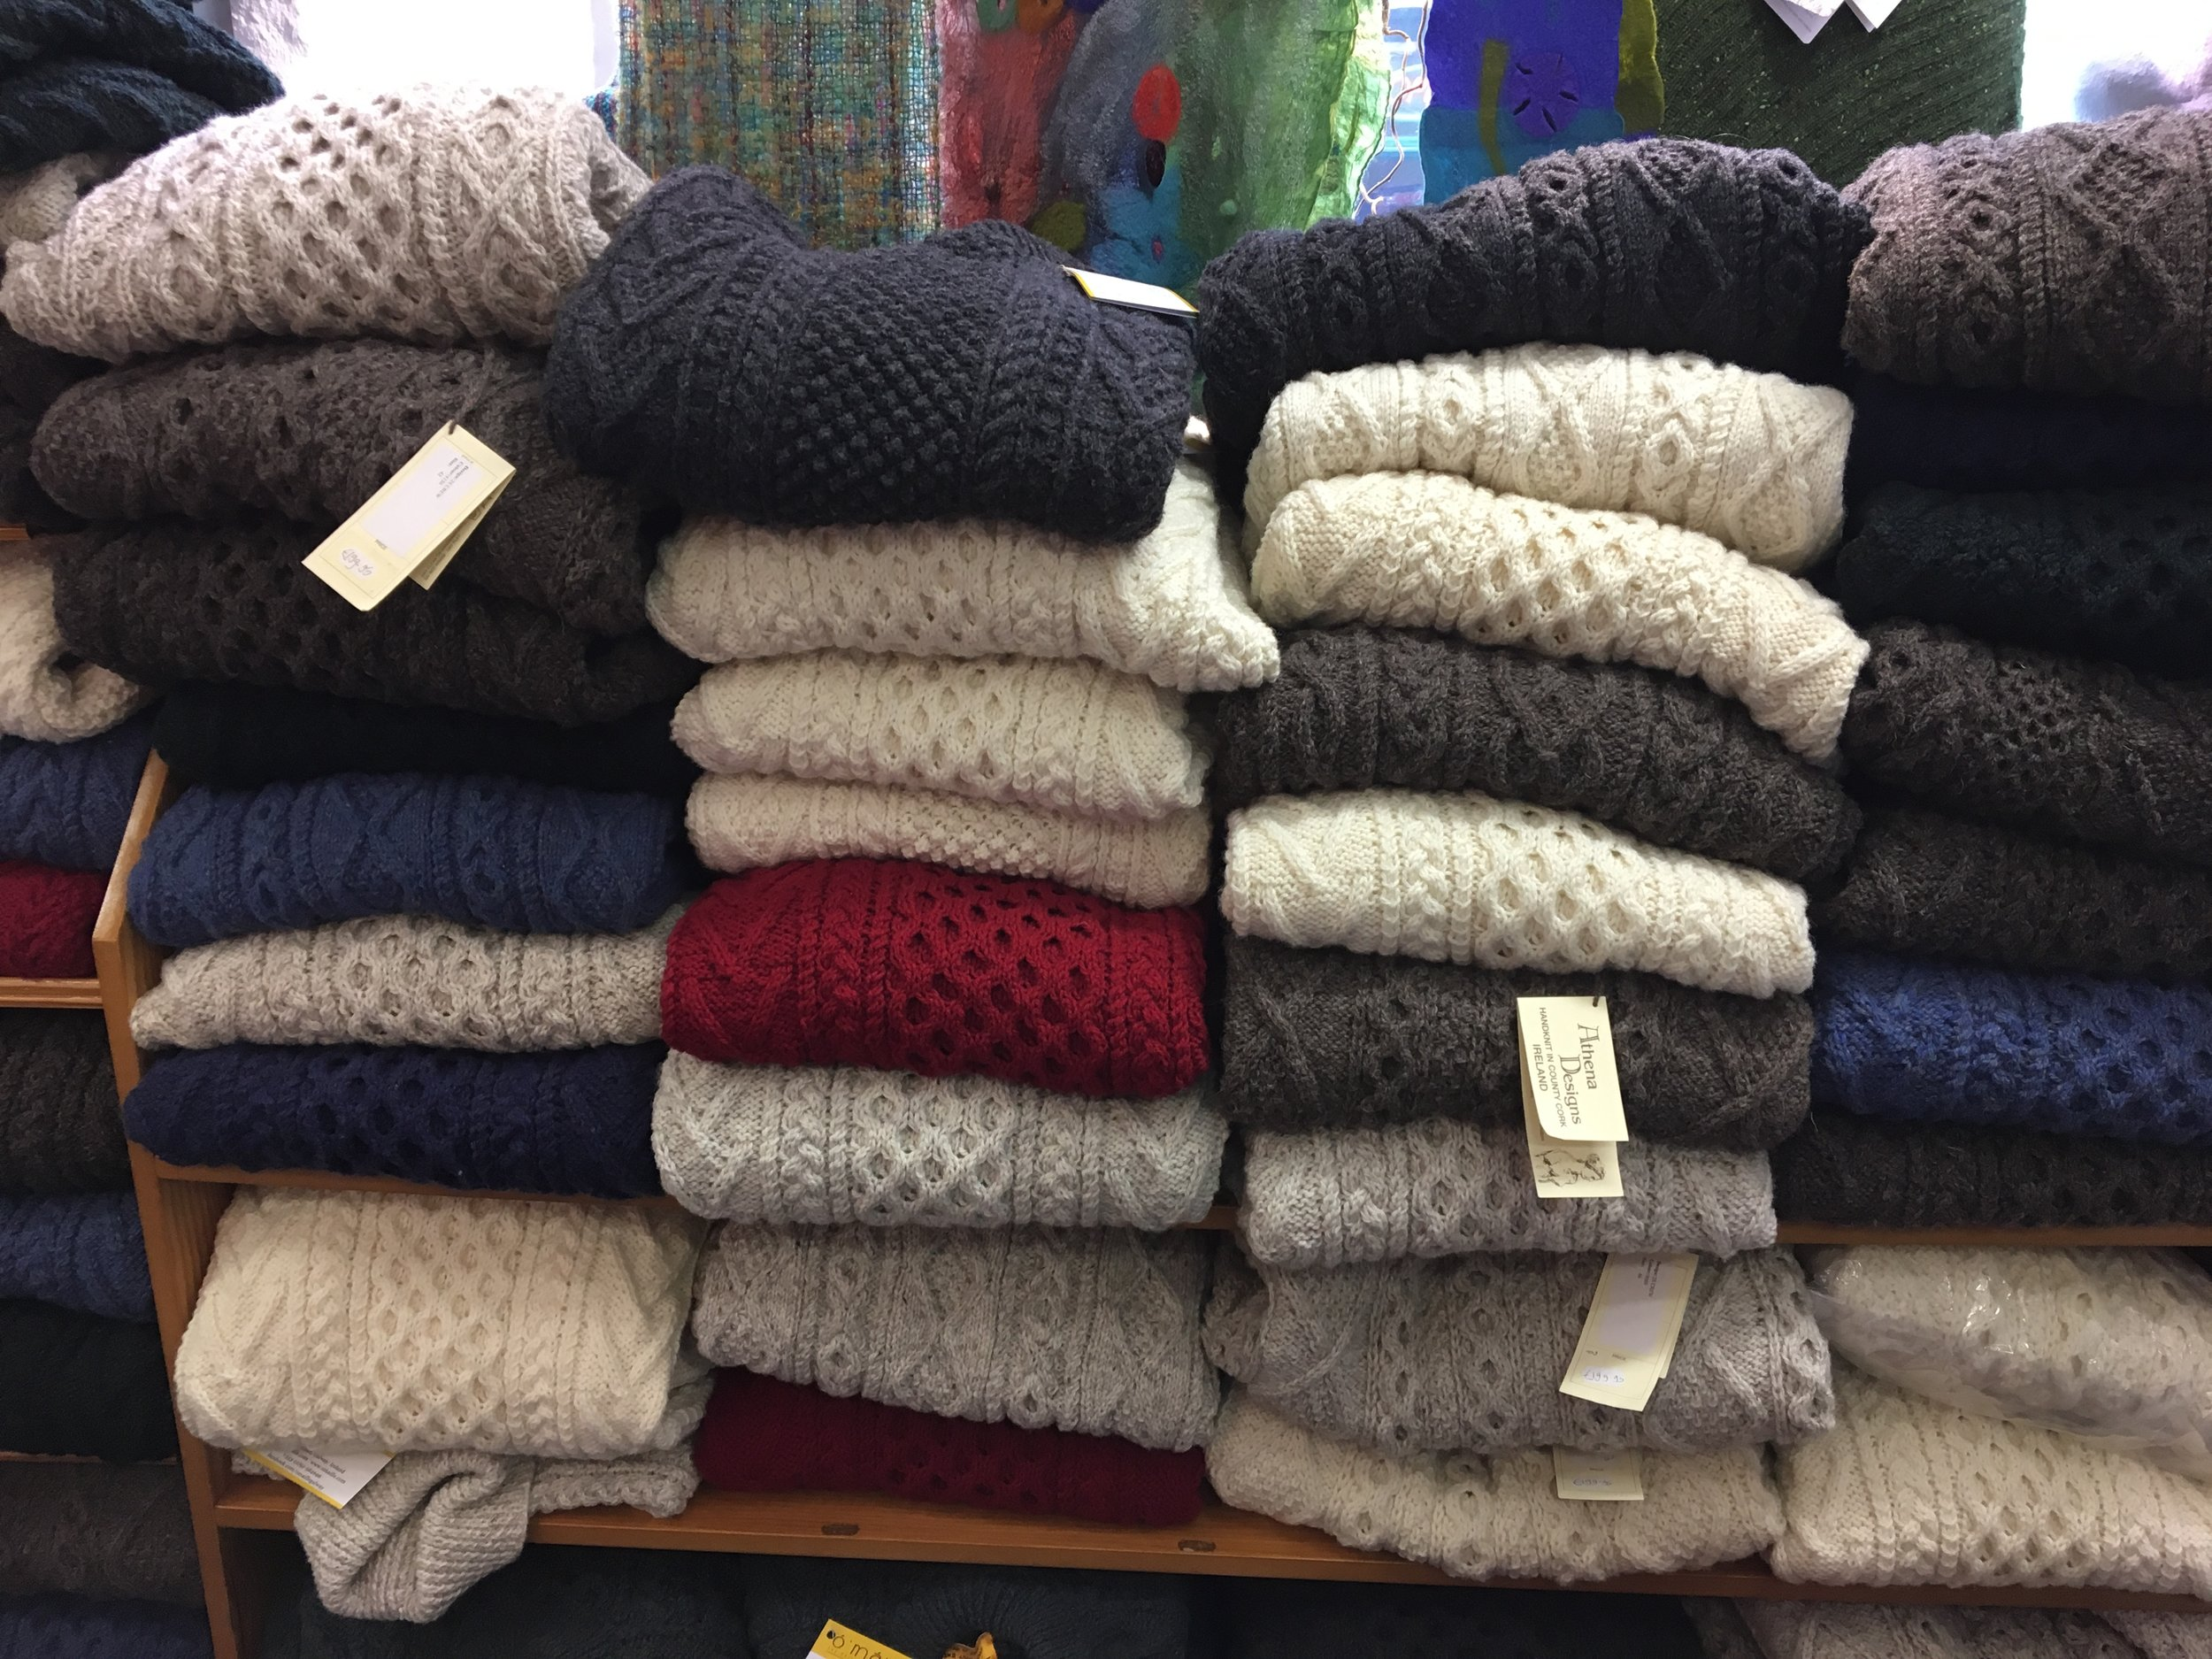 Stacks and stacks of handknit sweaters.